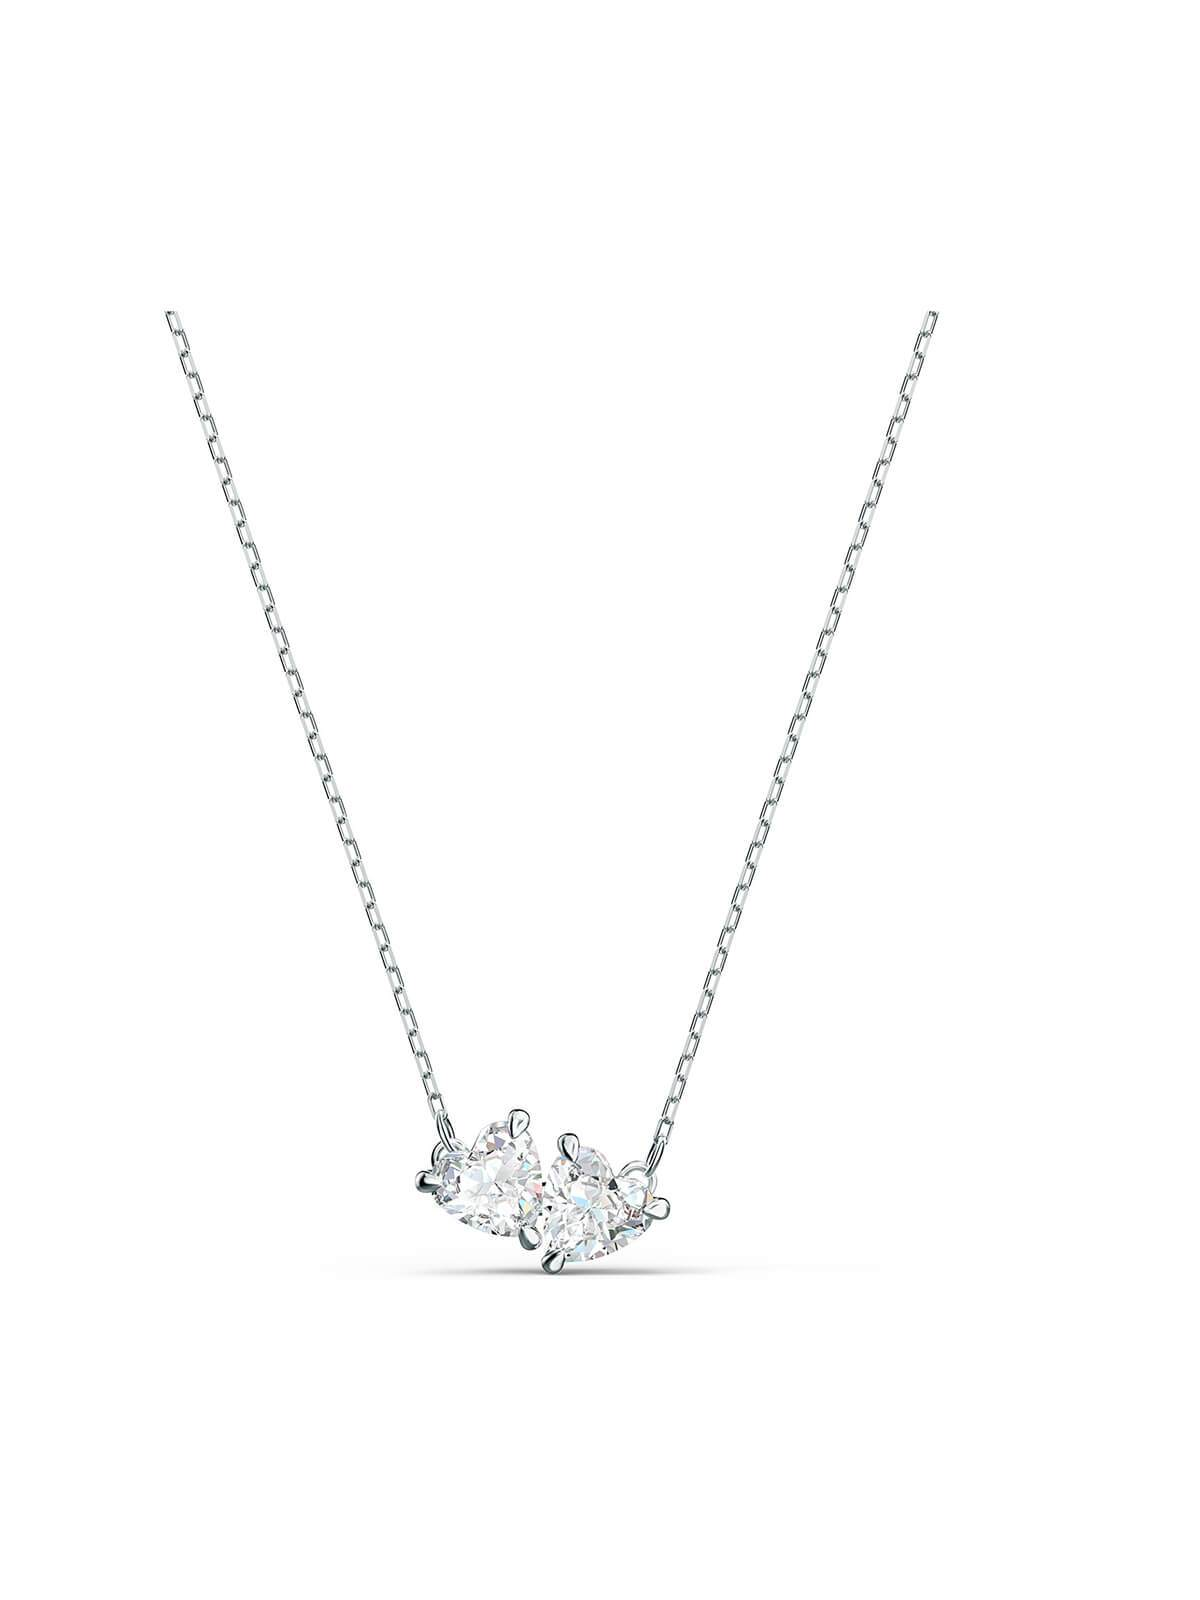 Swarovski Attract Soul Rhodium Plated & Crystal Necklace 5517117